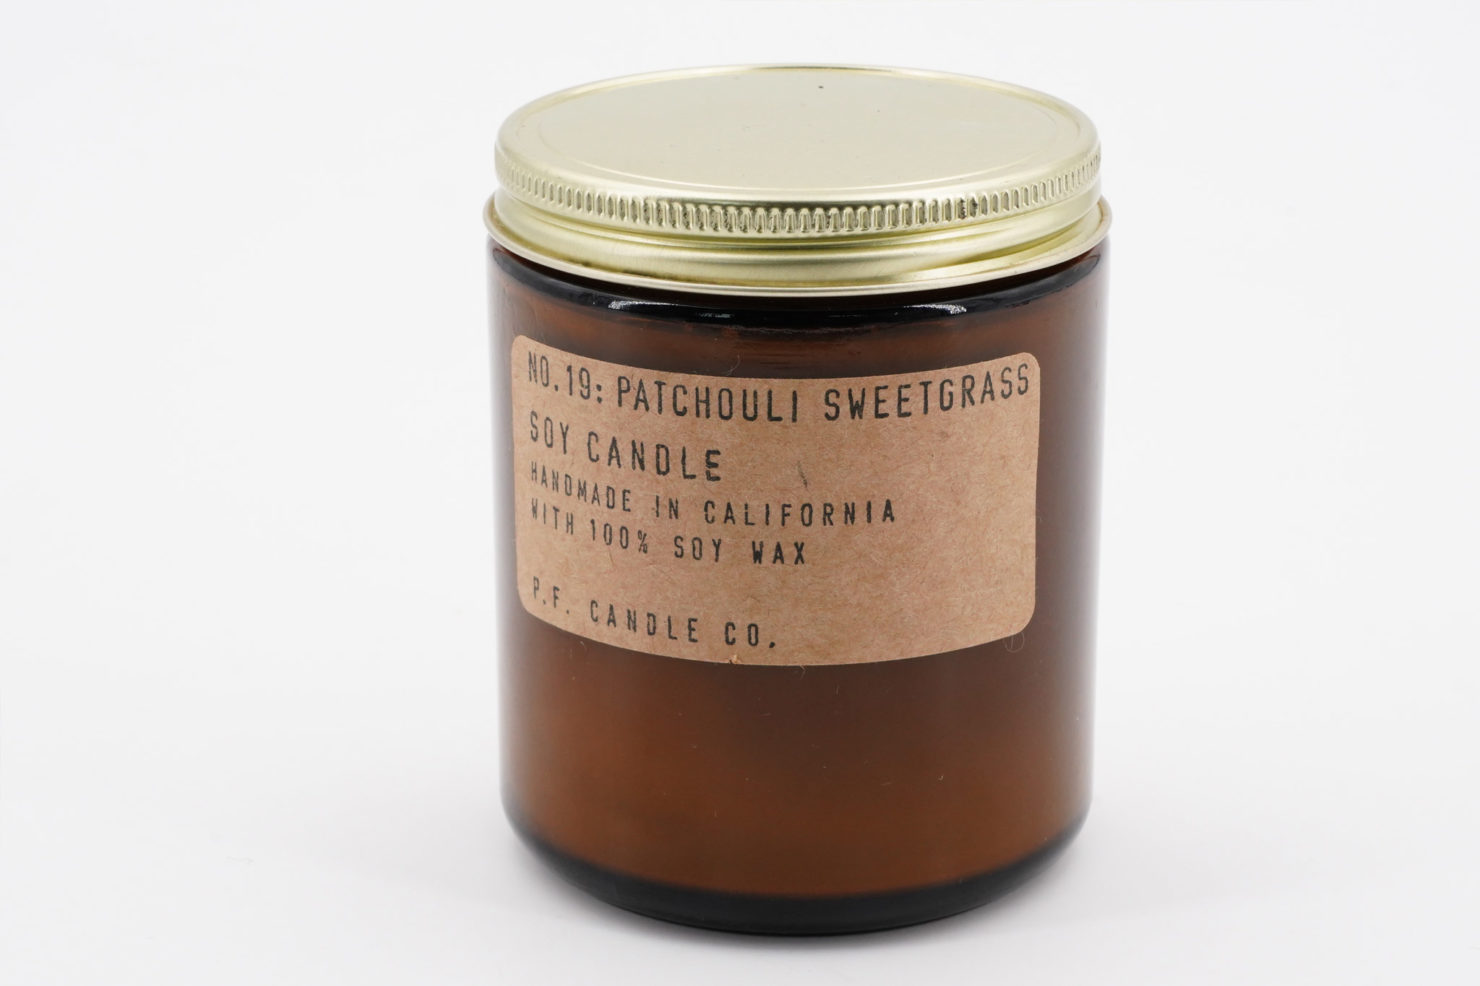 SC-PATCHOULI SWEETGRASS - P.F CANDLE CO